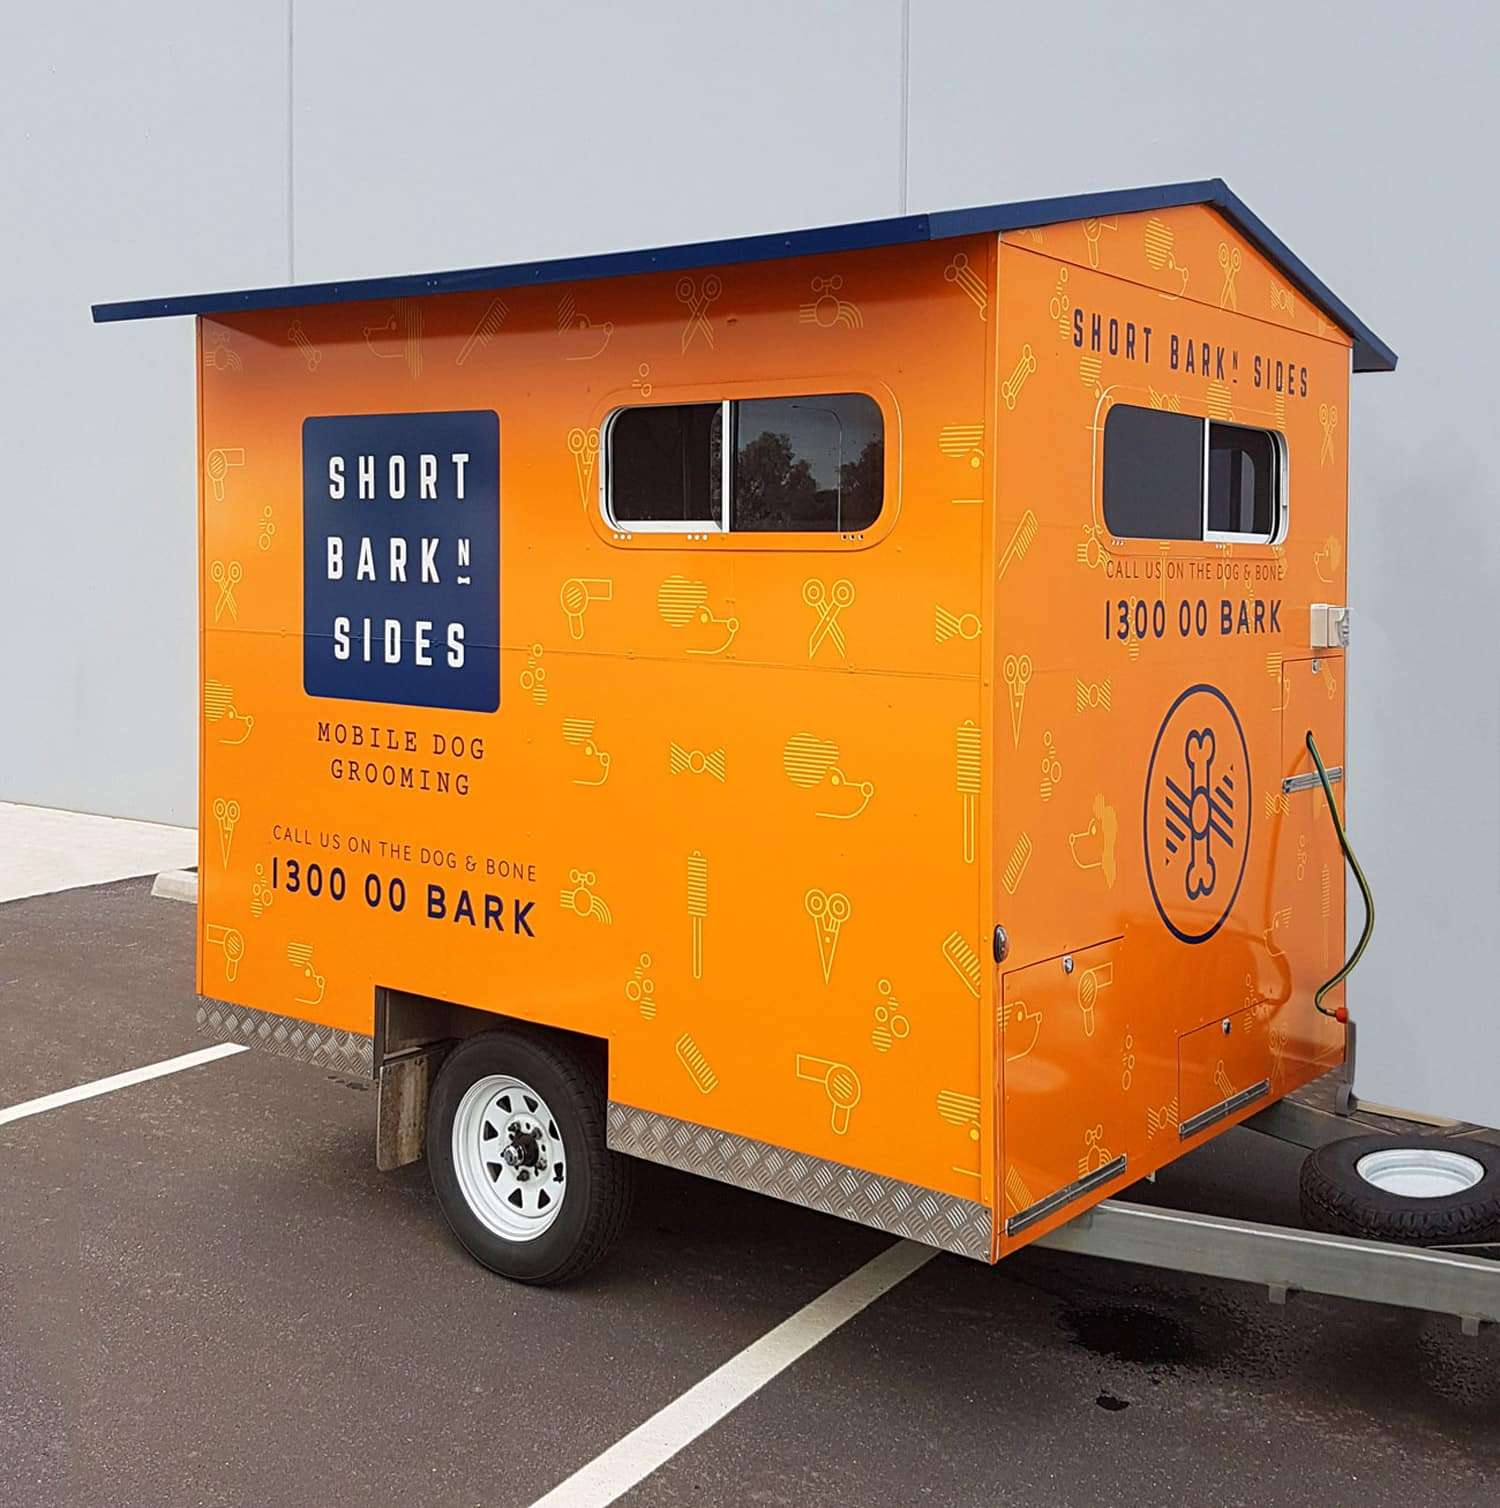 Trailer design for dog grooming business Short Bark N Sides by Flux Visual Communication